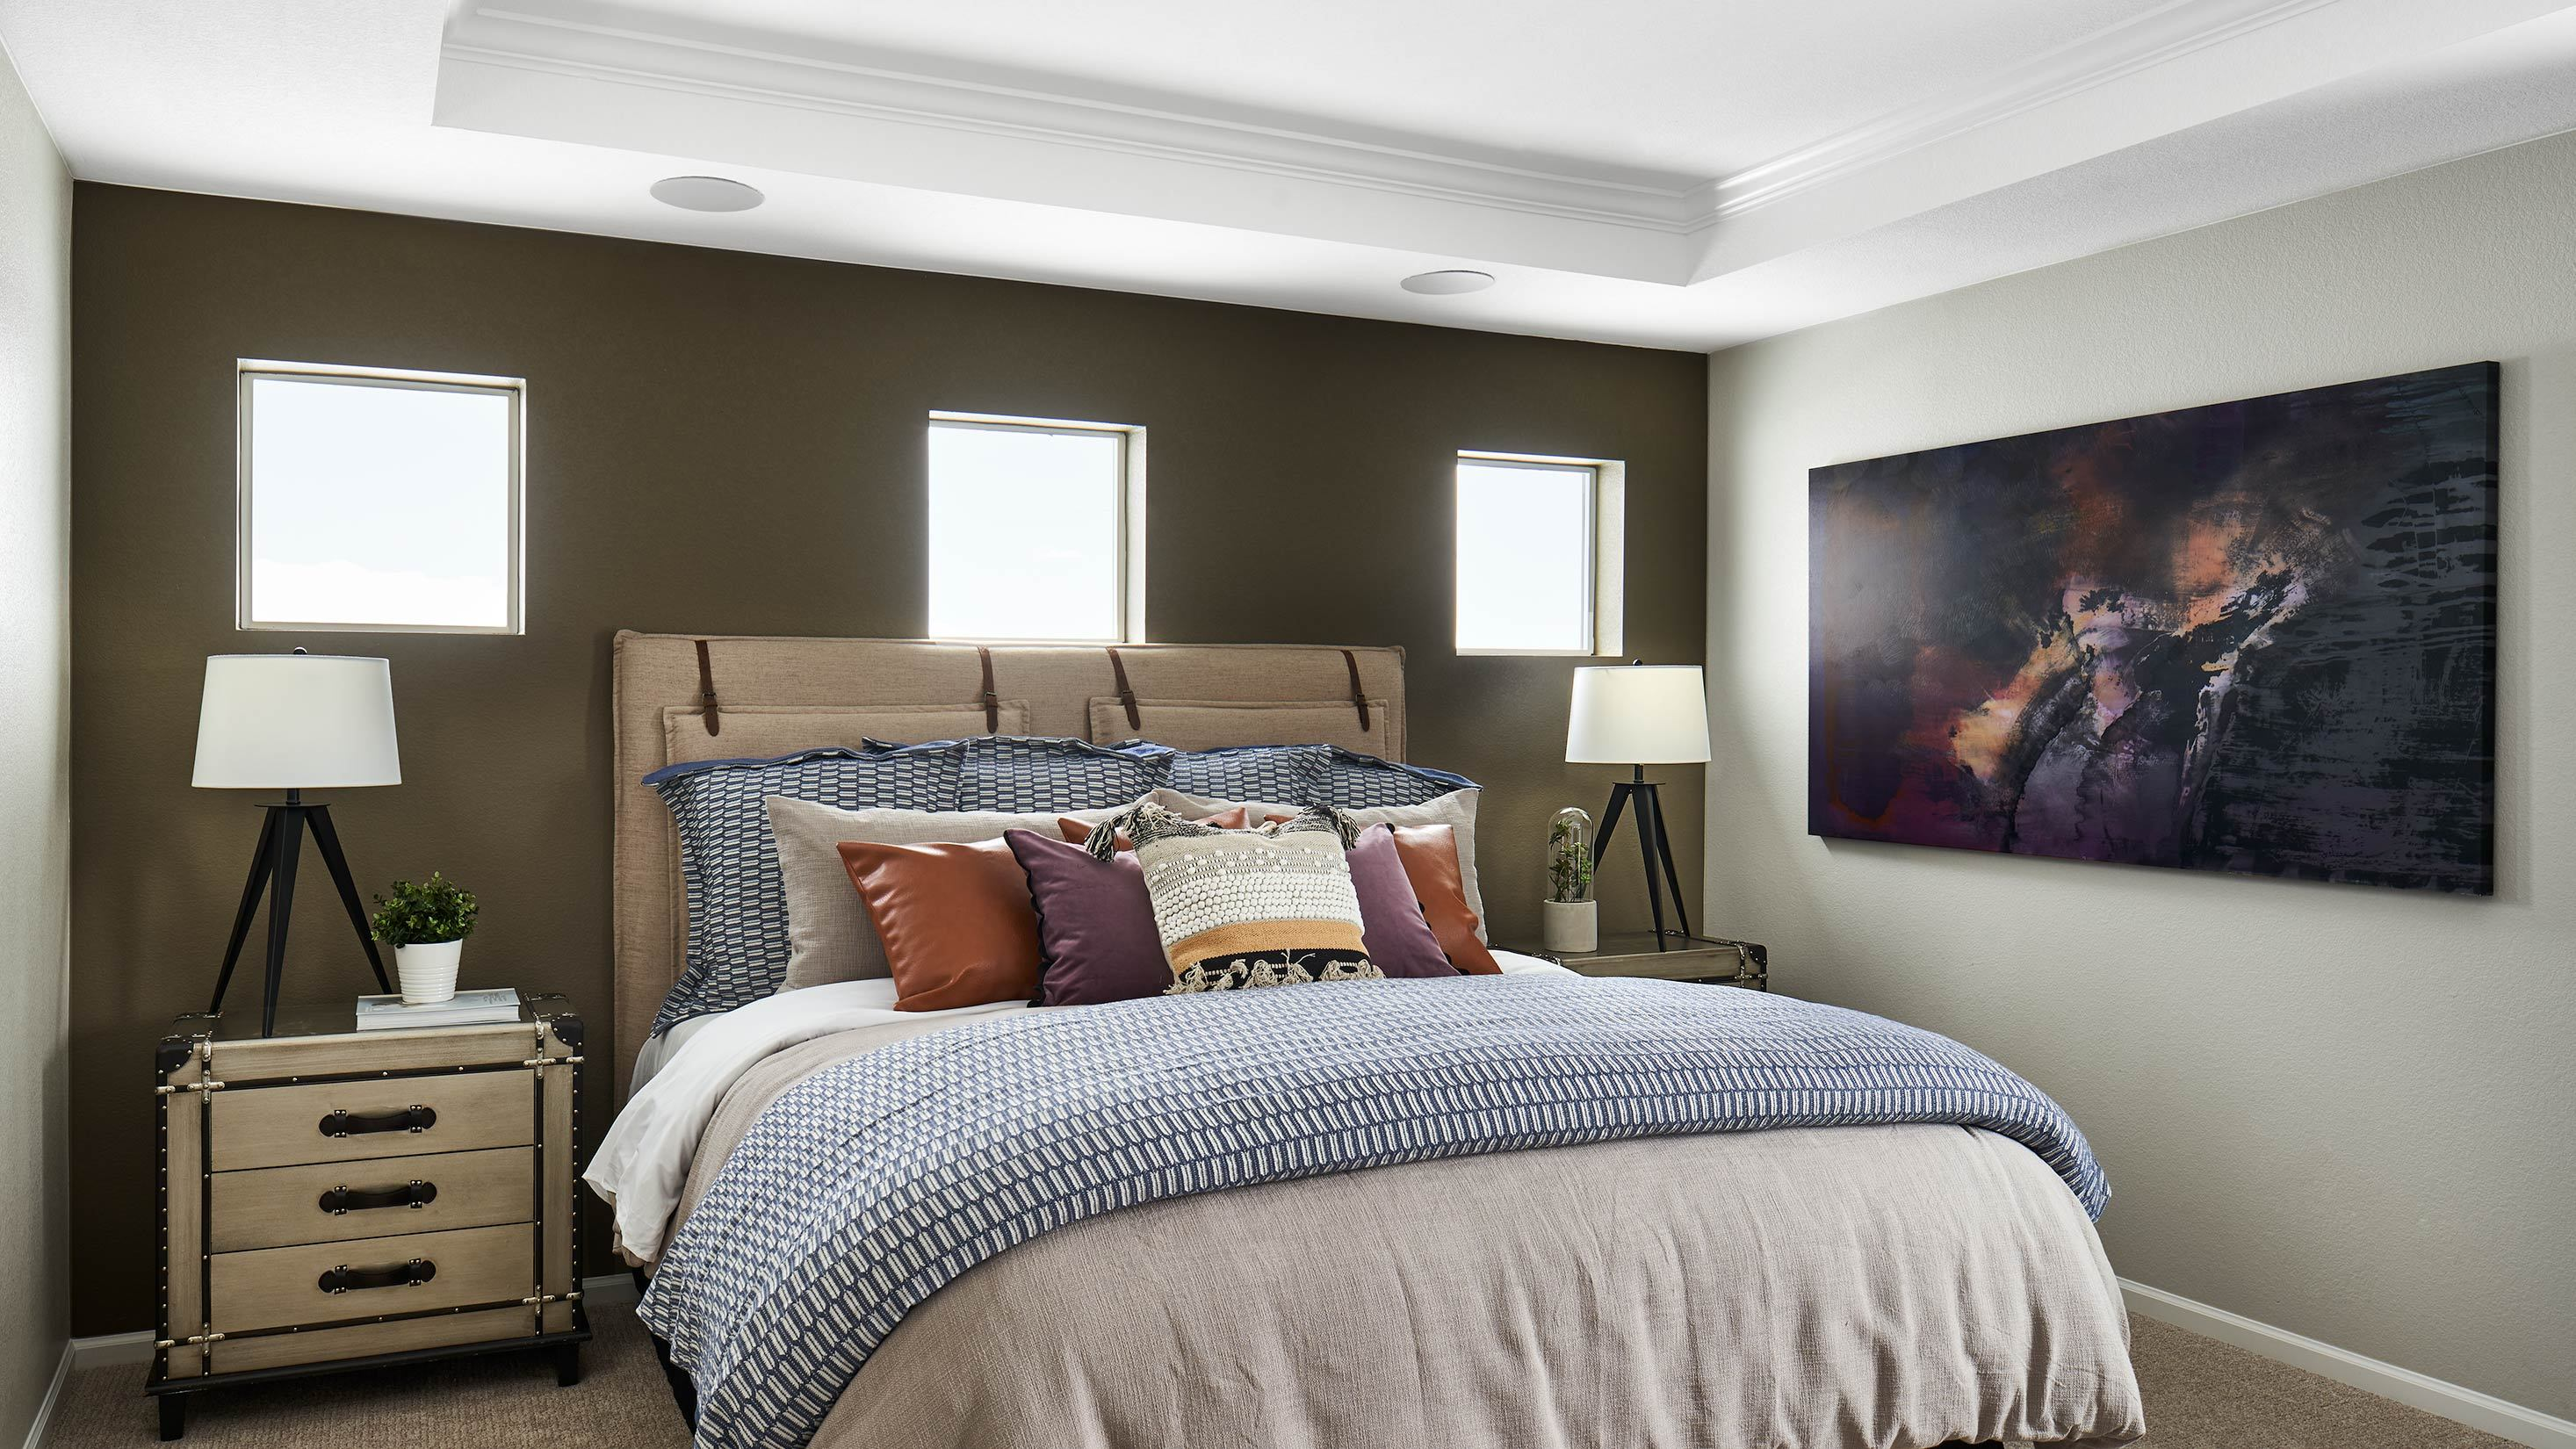 Bedroom featured in the Stella By Taylor Morrison in Denver, CO